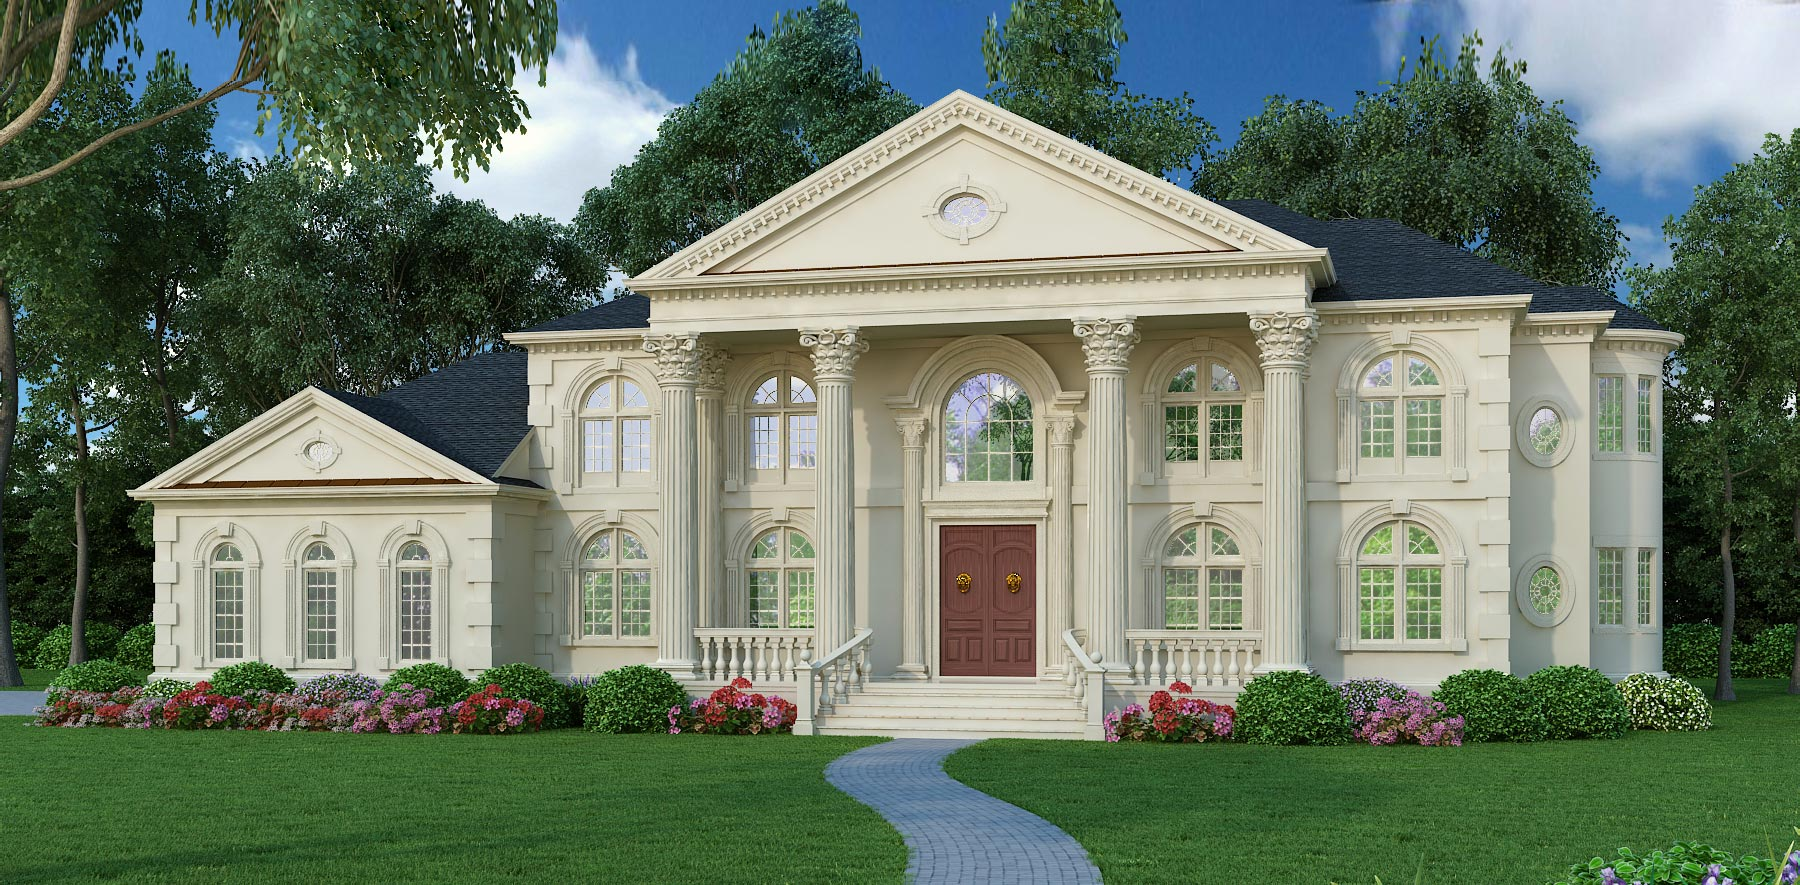 Colonial house plan 5 bedrms 4 5 baths 5699 sq ft for Mansion design plans